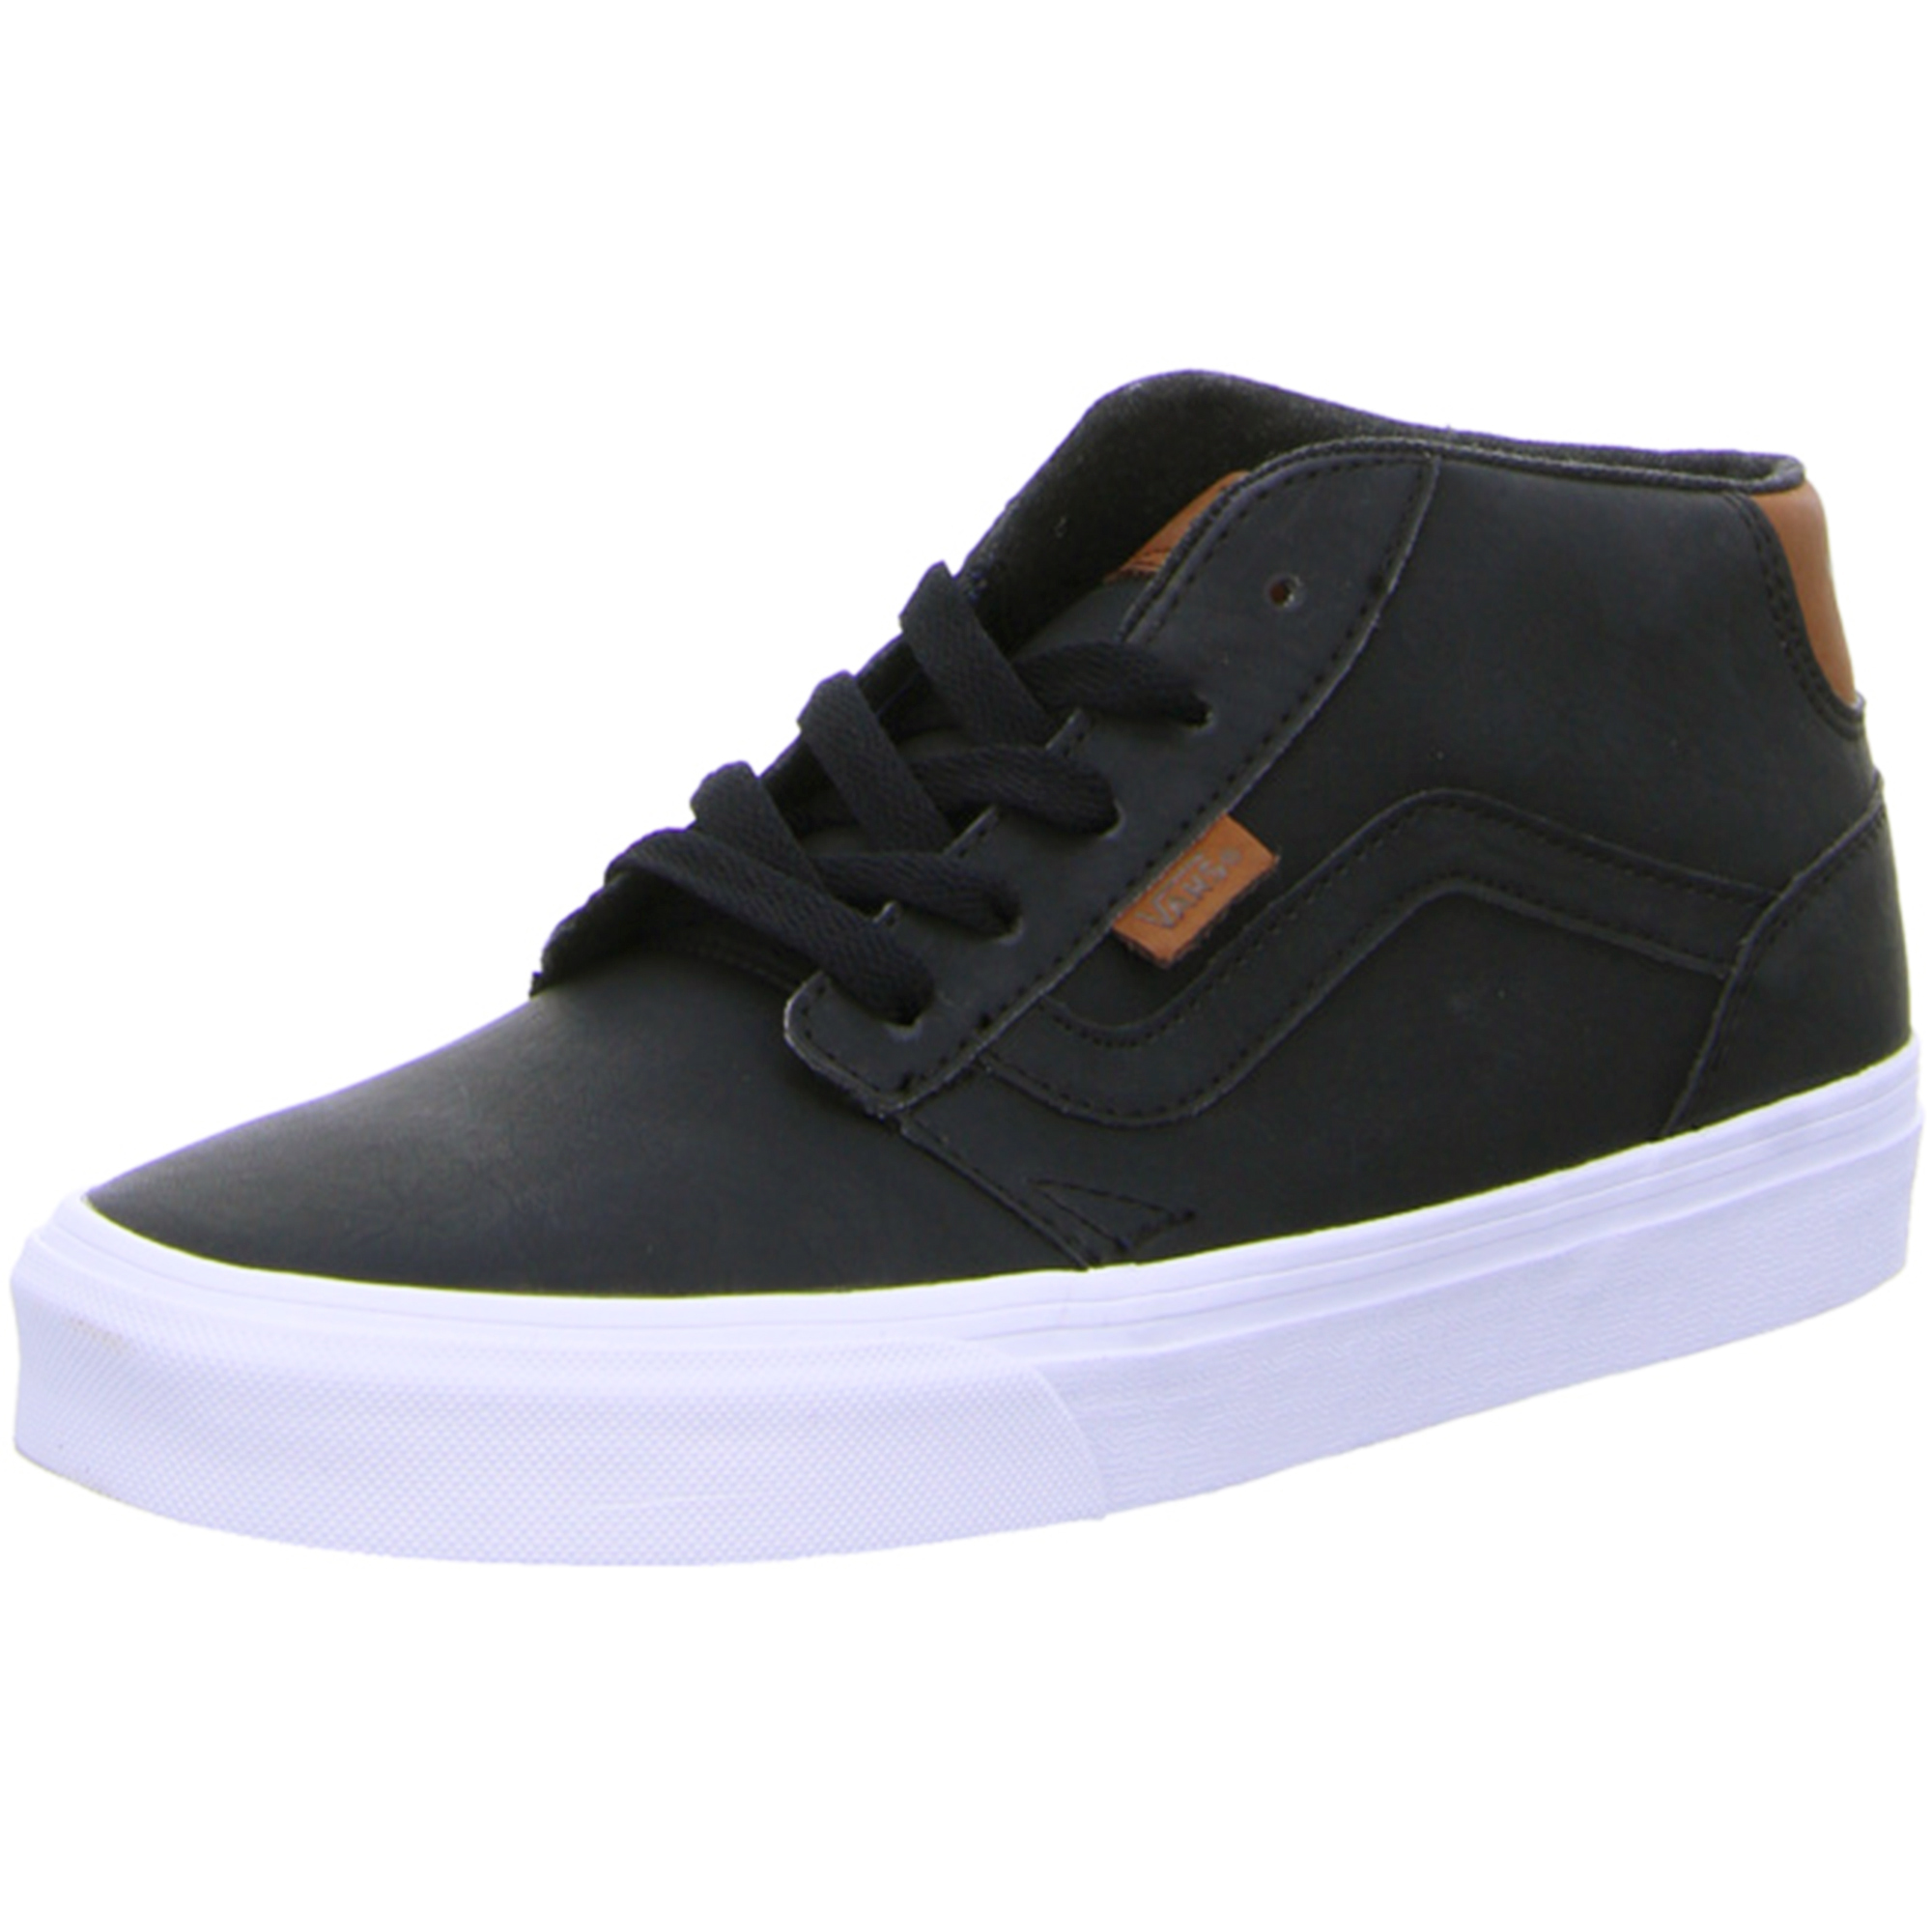 vans chapman mid stripe leather fashion skater shoes casual trainers black ebay. Black Bedroom Furniture Sets. Home Design Ideas